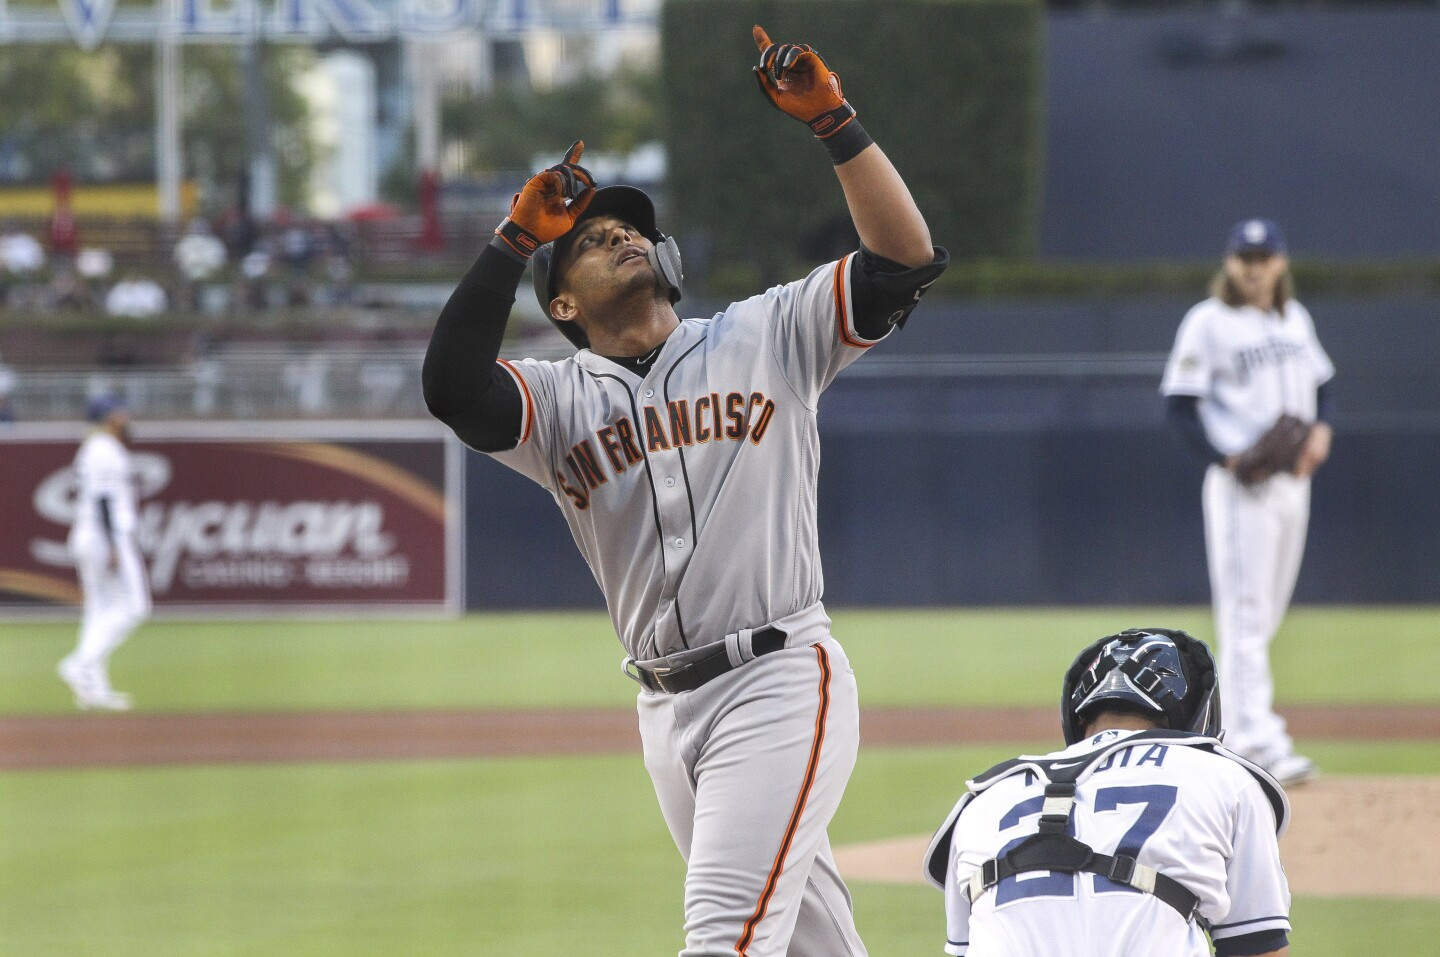 The Giants' Donovan Solano points up after hitting a home run off of Padres' pitcher Matt Strahm, right, in the first inning at Petco Park on Tuesday, July 2, 2019 in San Diego, California.